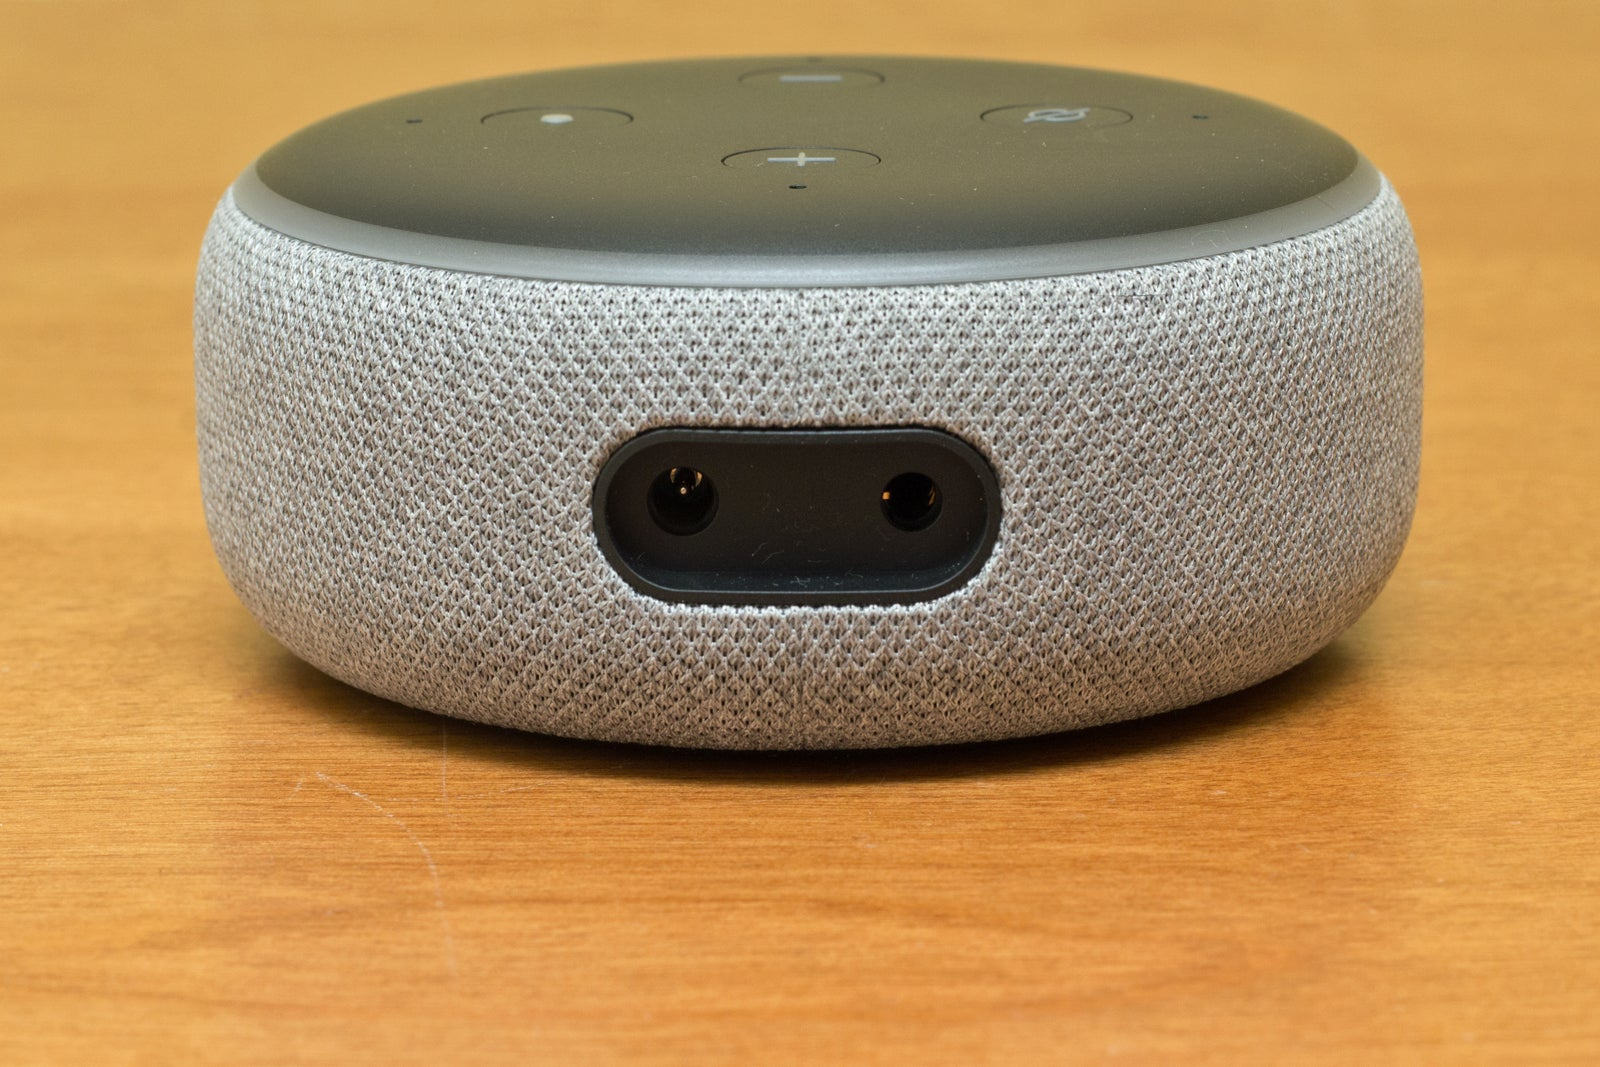 amazon echo dot 3rd gen review a big step up in terms. Black Bedroom Furniture Sets. Home Design Ideas